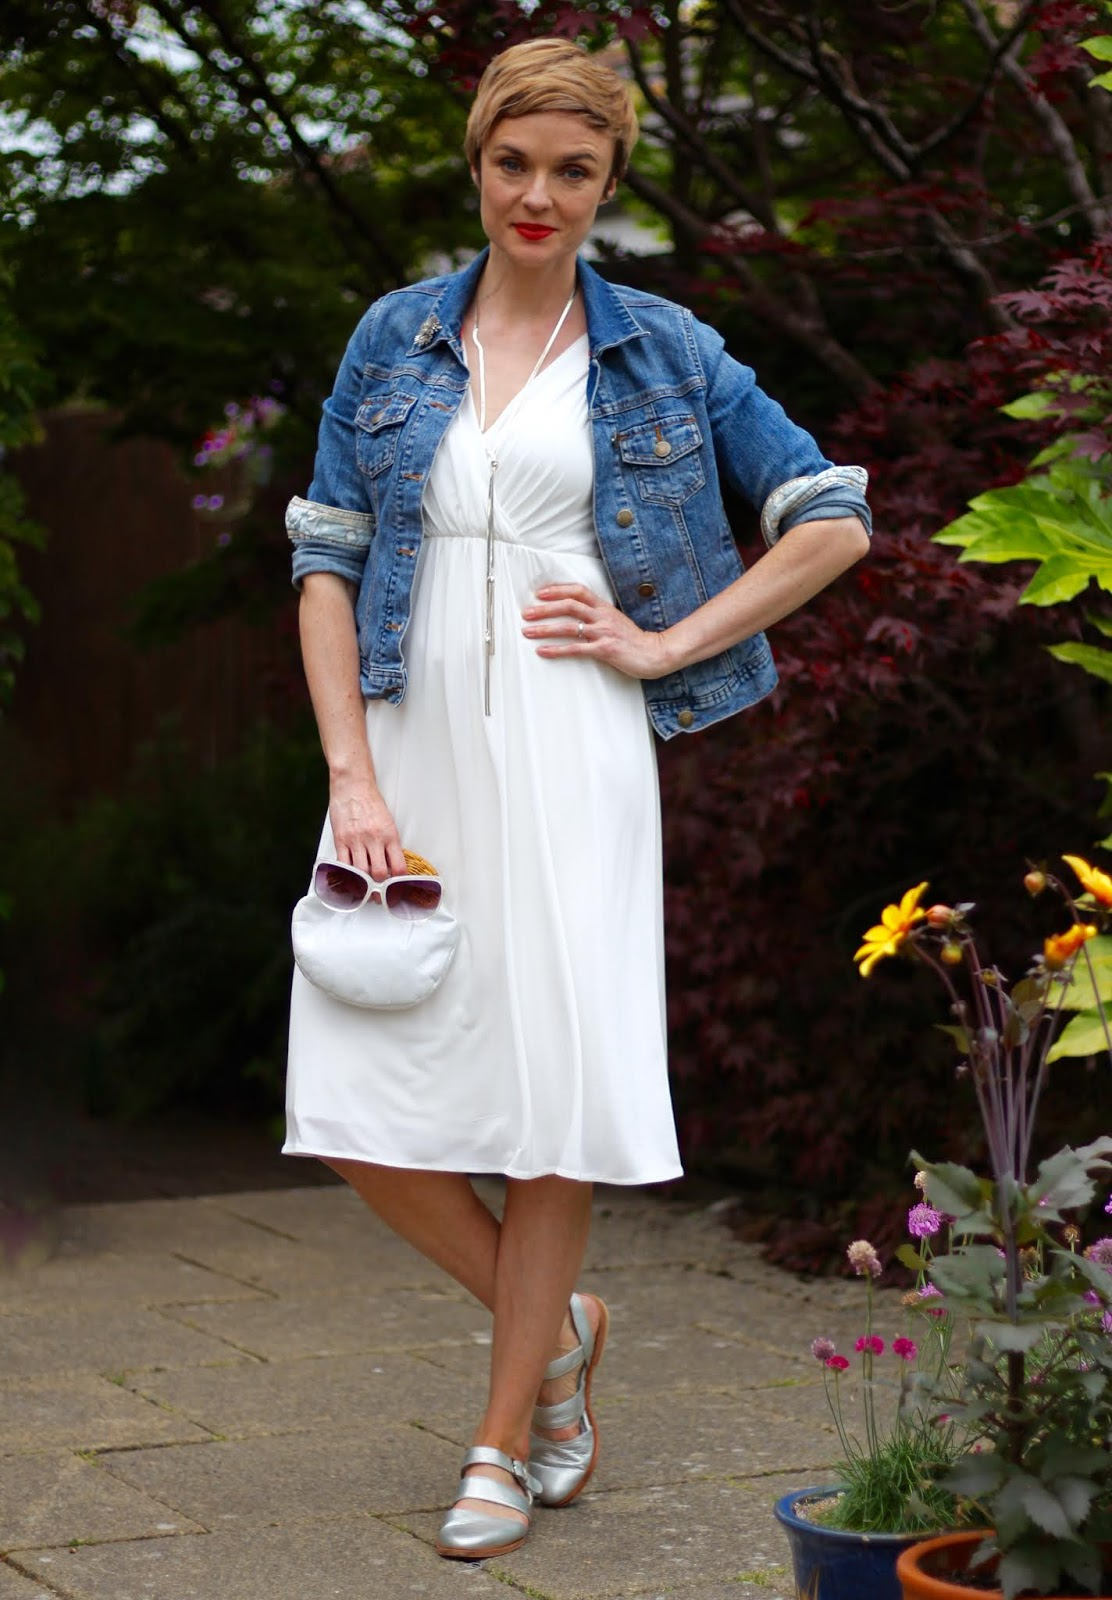 Havana Dress | Styling a White Dress in Summer | Fake Fabulous